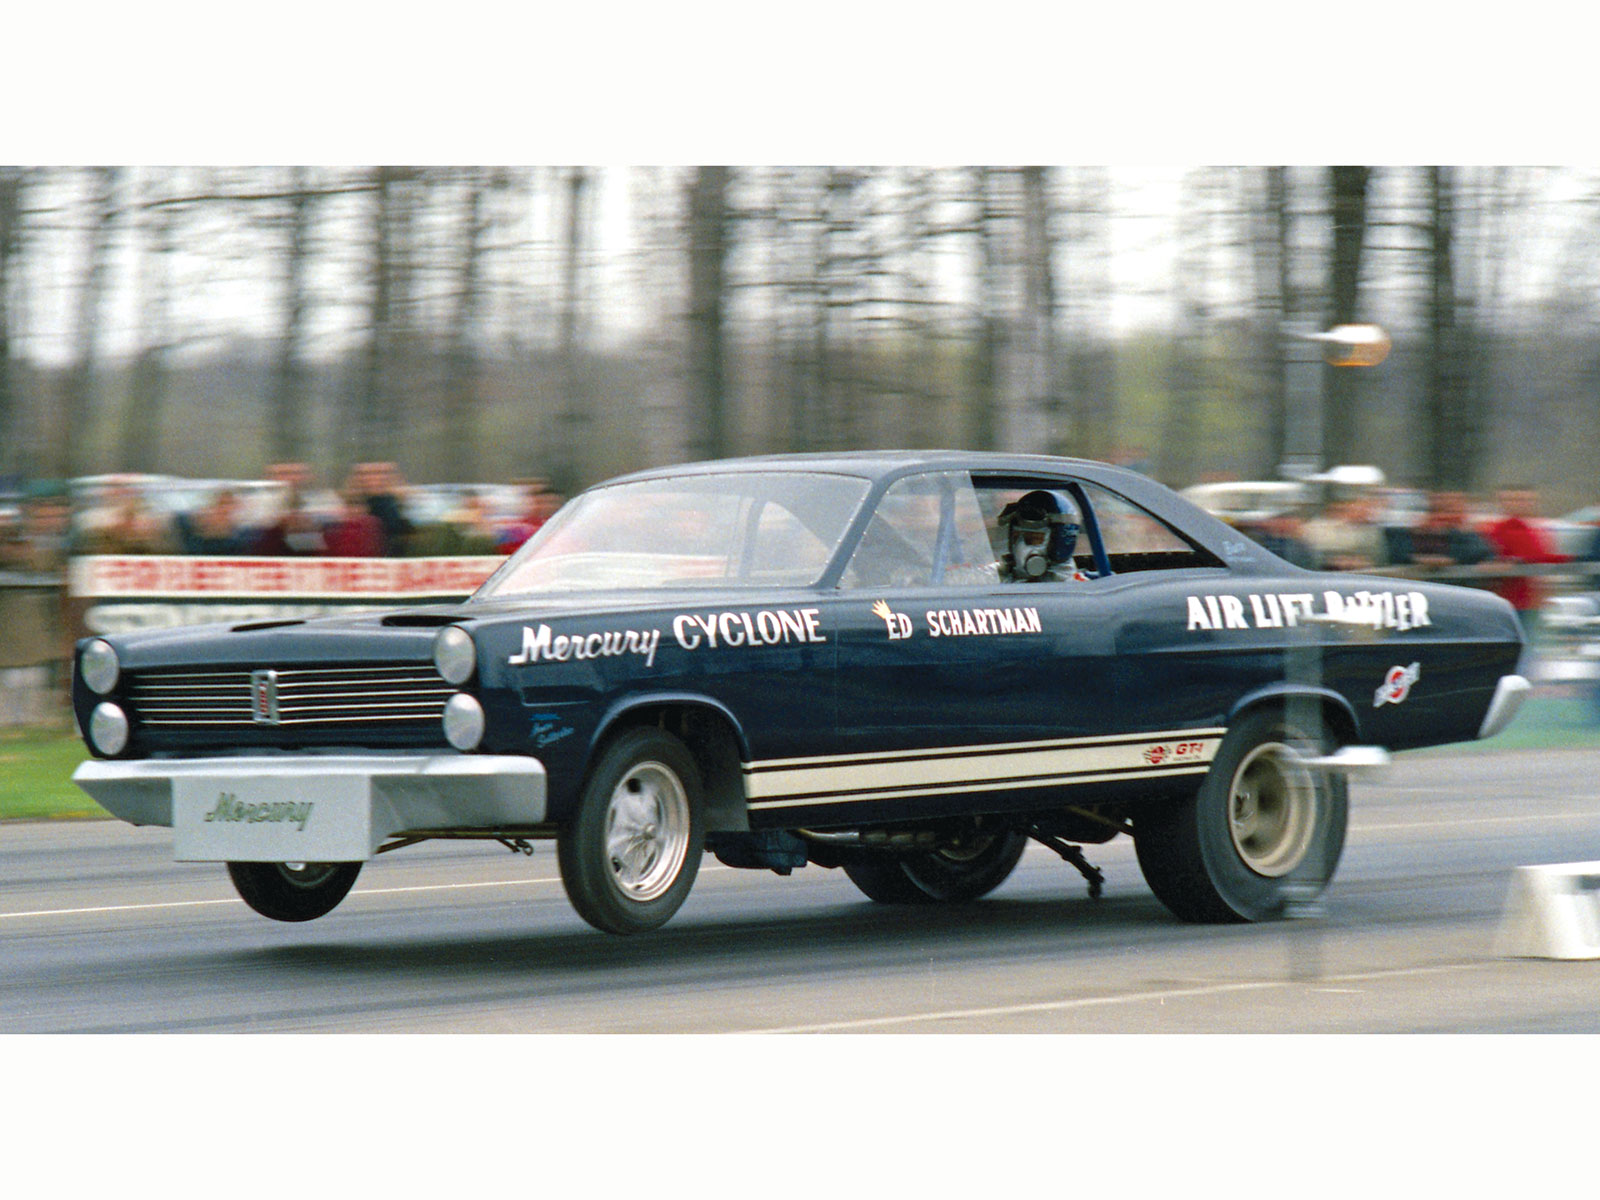 The beautifully simple paintjob on Eddie Schartman's Mercury Comet Air Lift Rattler, shown here in action at the Super Stock Nationals at New York National Speedway in 1967, covered an extremely competitive car and driver. Schartman stuck with the Mercury Funny Car racing program right on through the switch to Cougar bodies, right up until the end of Ford racing in 1972, eventually adapting a blown Cammer motor as Chrisman and Nicholson had done.